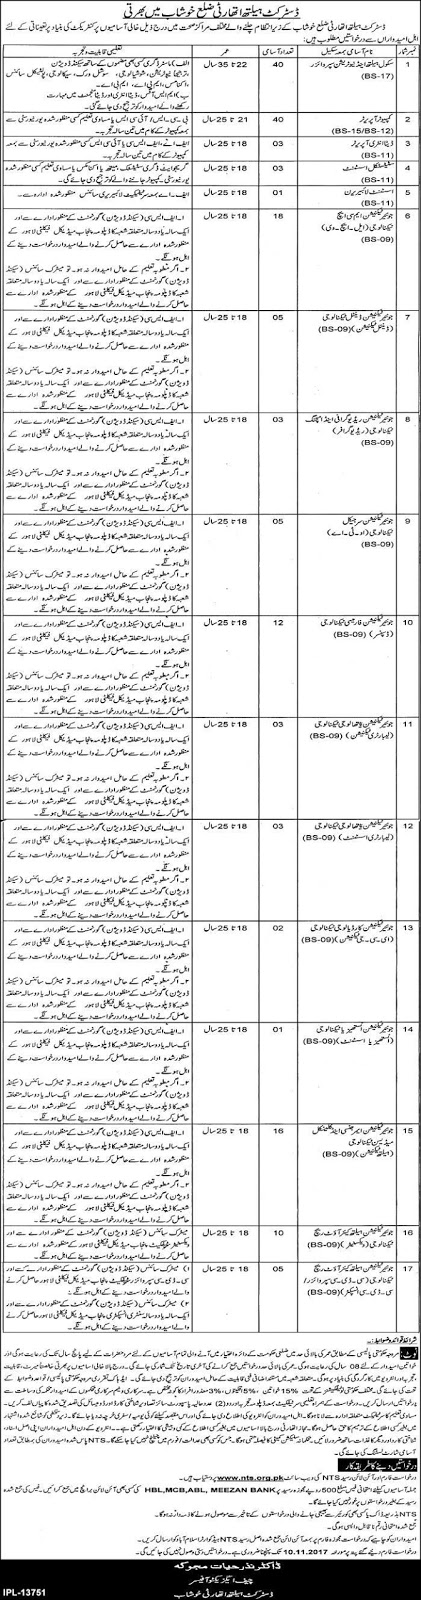 District Health Authority Khushab Jobs 2017